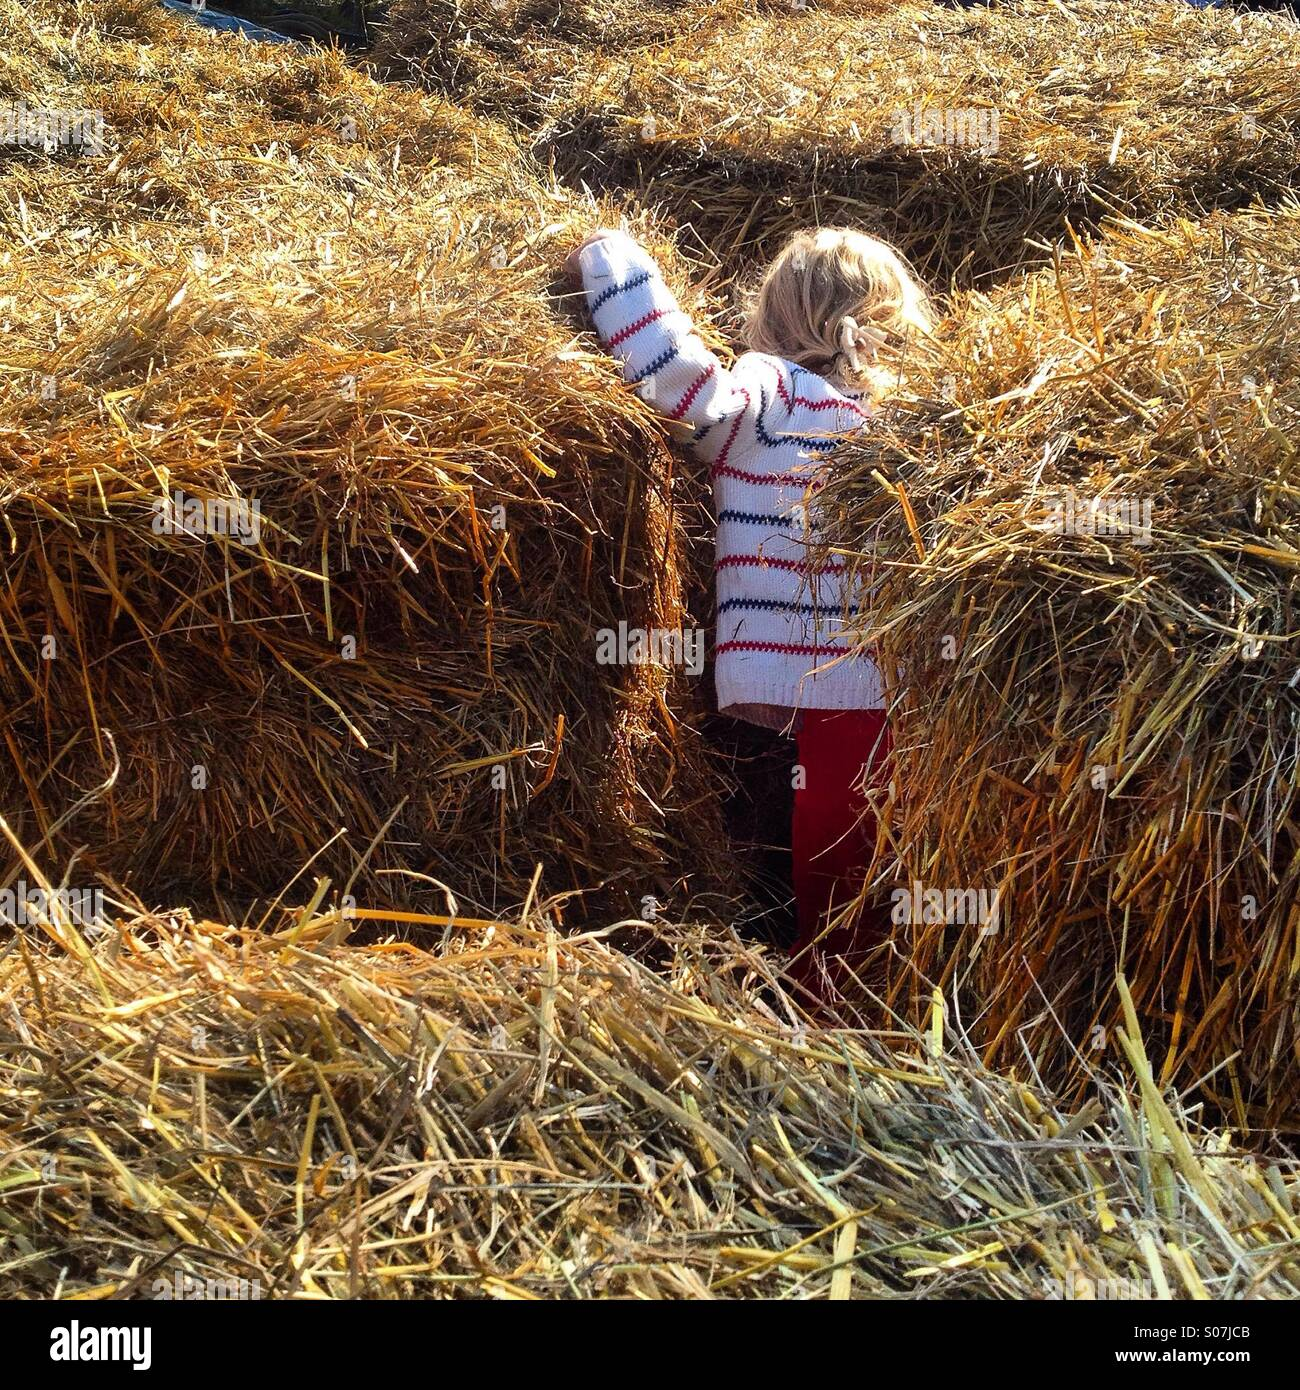 A young girl playing hide and seek in between hay bales at a traditional nordic harvest festival - Stock Image